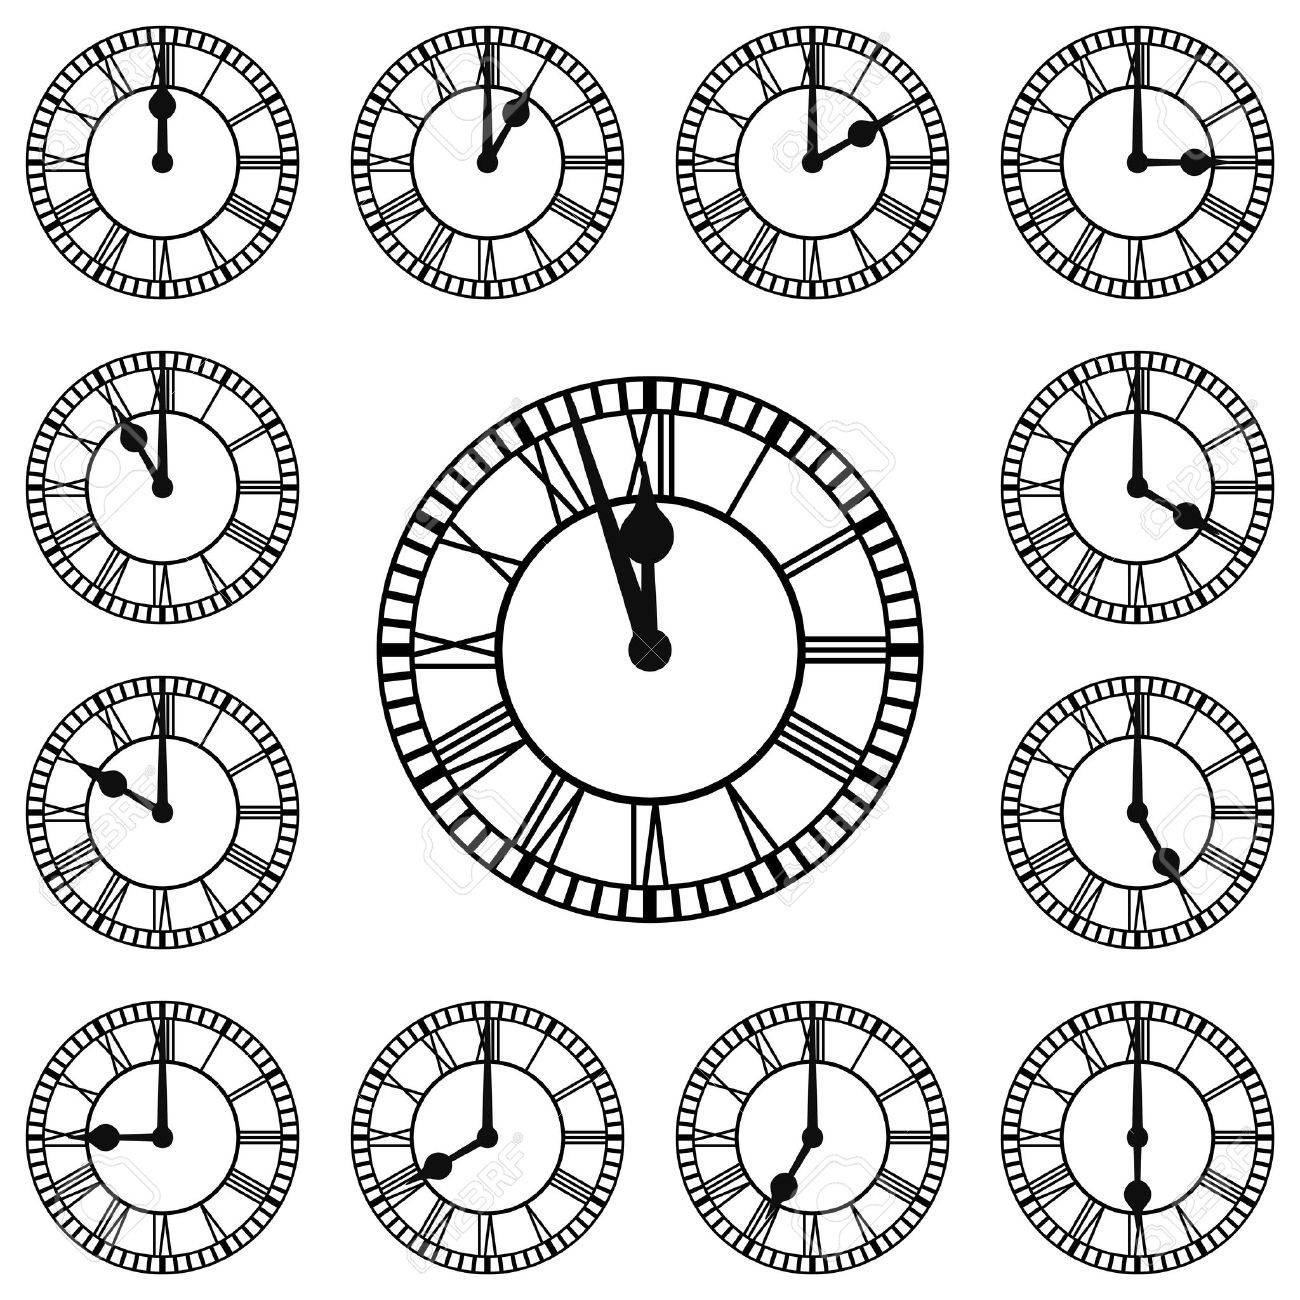 roman numeral clocks showing every hour each hour is on a separate